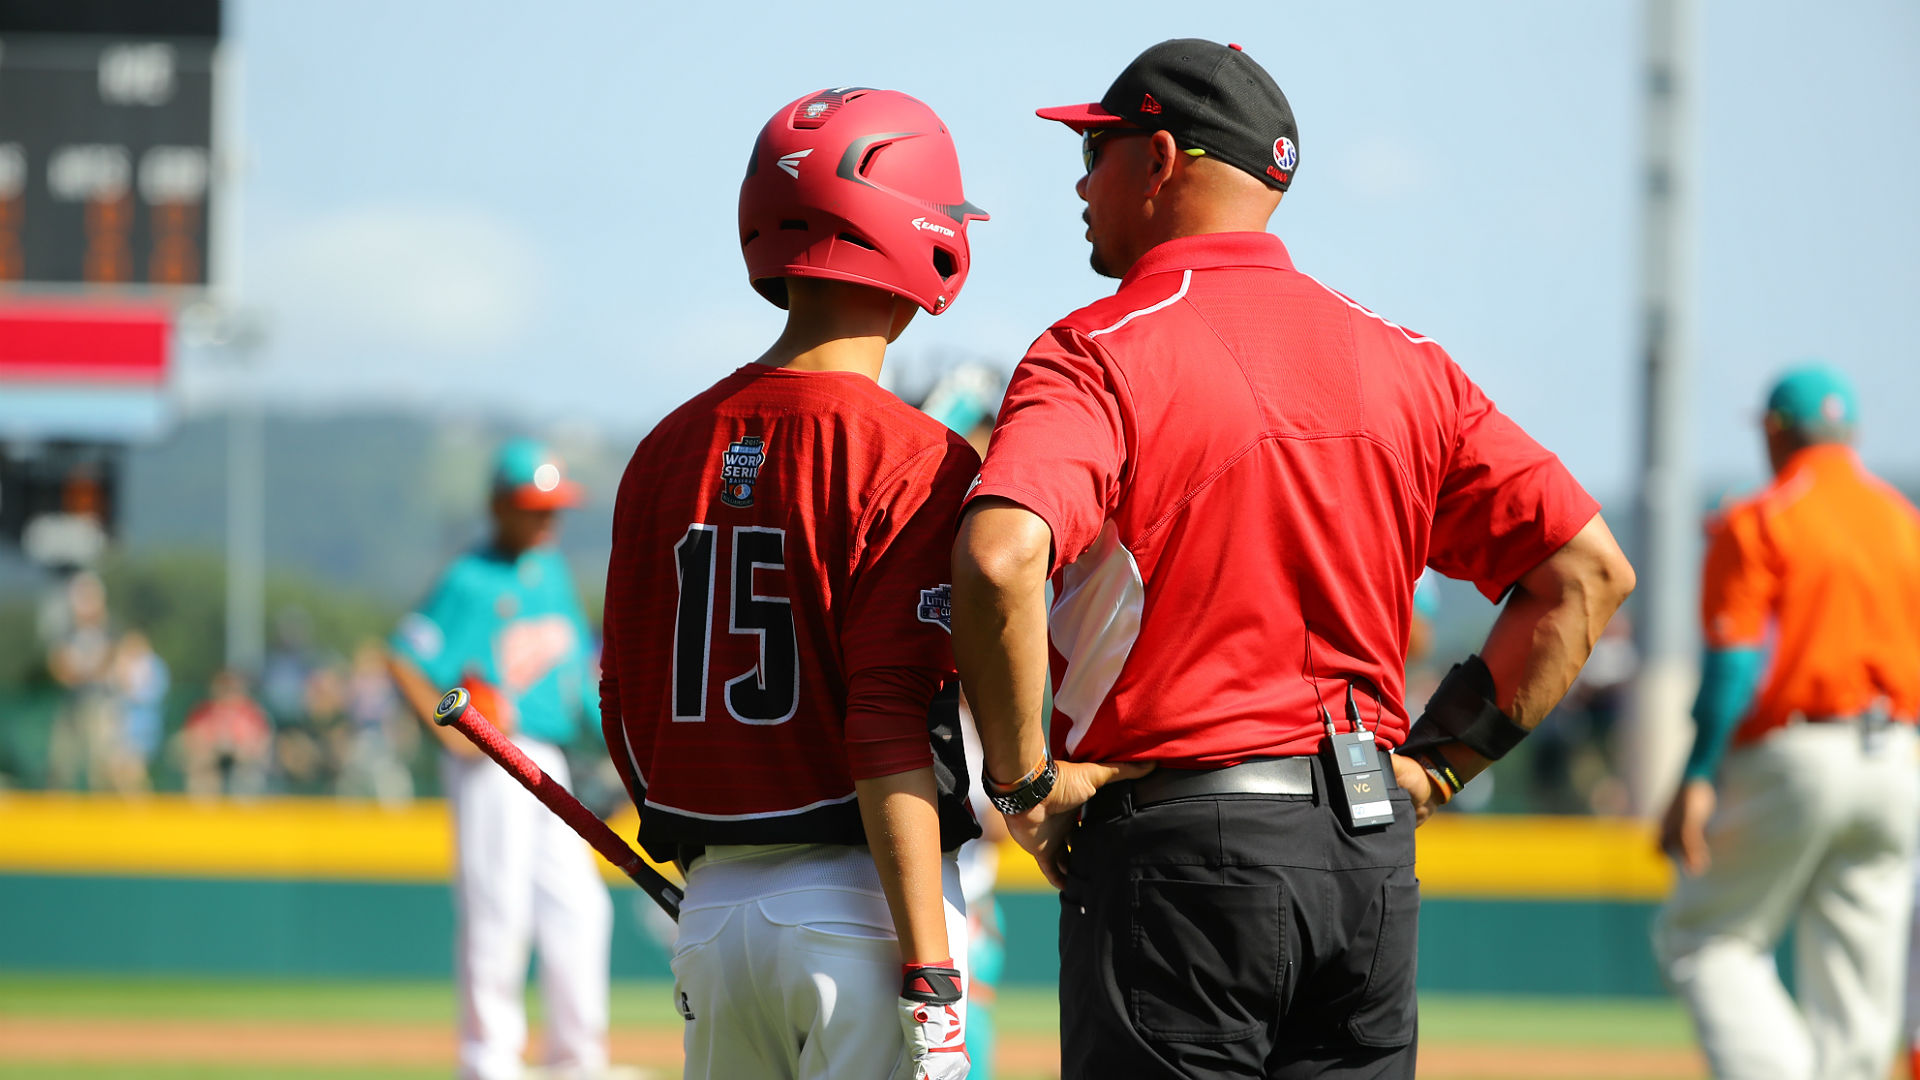 Japan beats Mexico 5-0, will play for Little League title